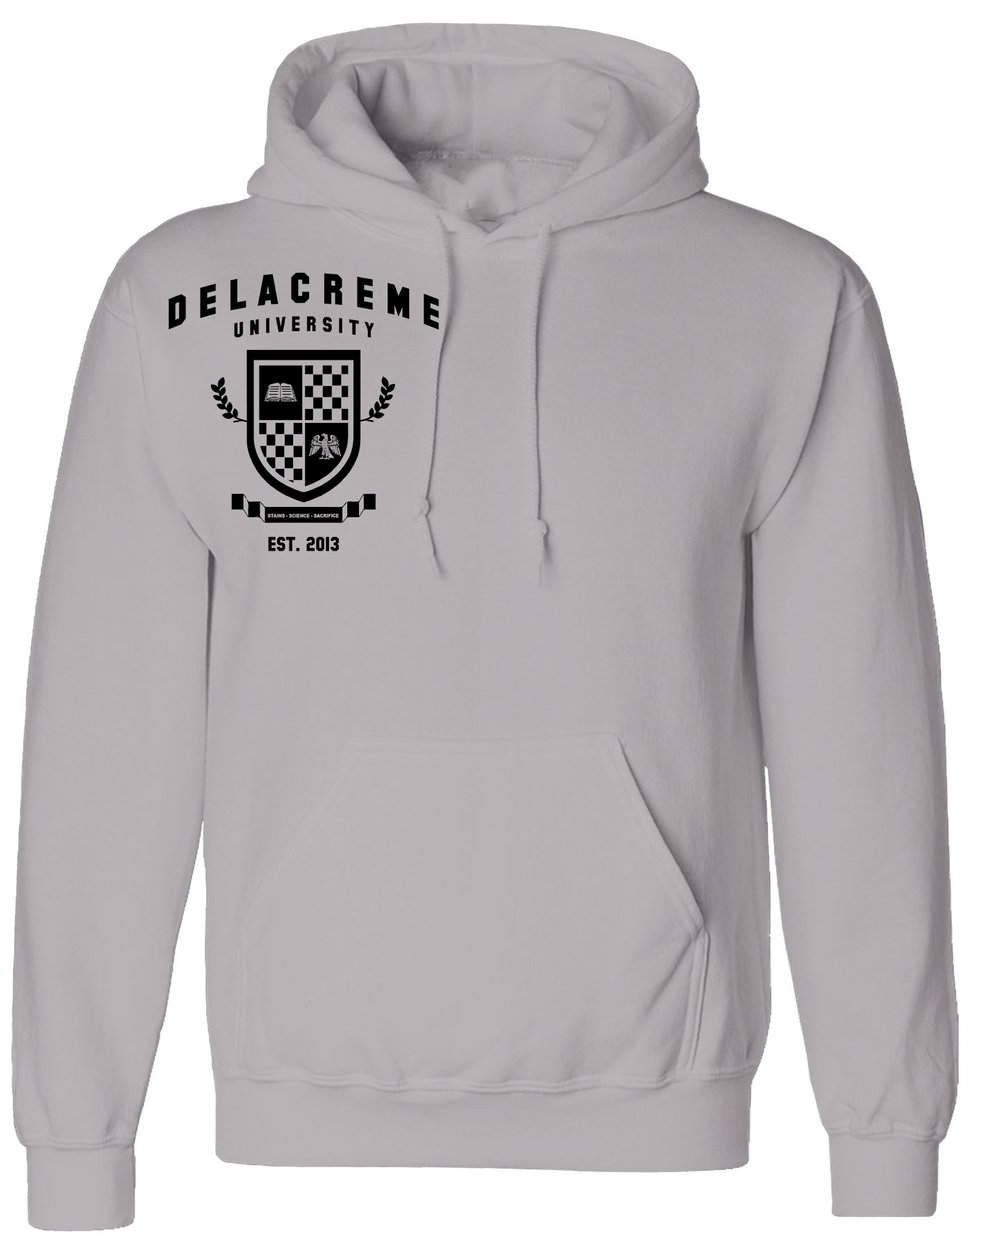 the delacreme university hoodie -sport grey